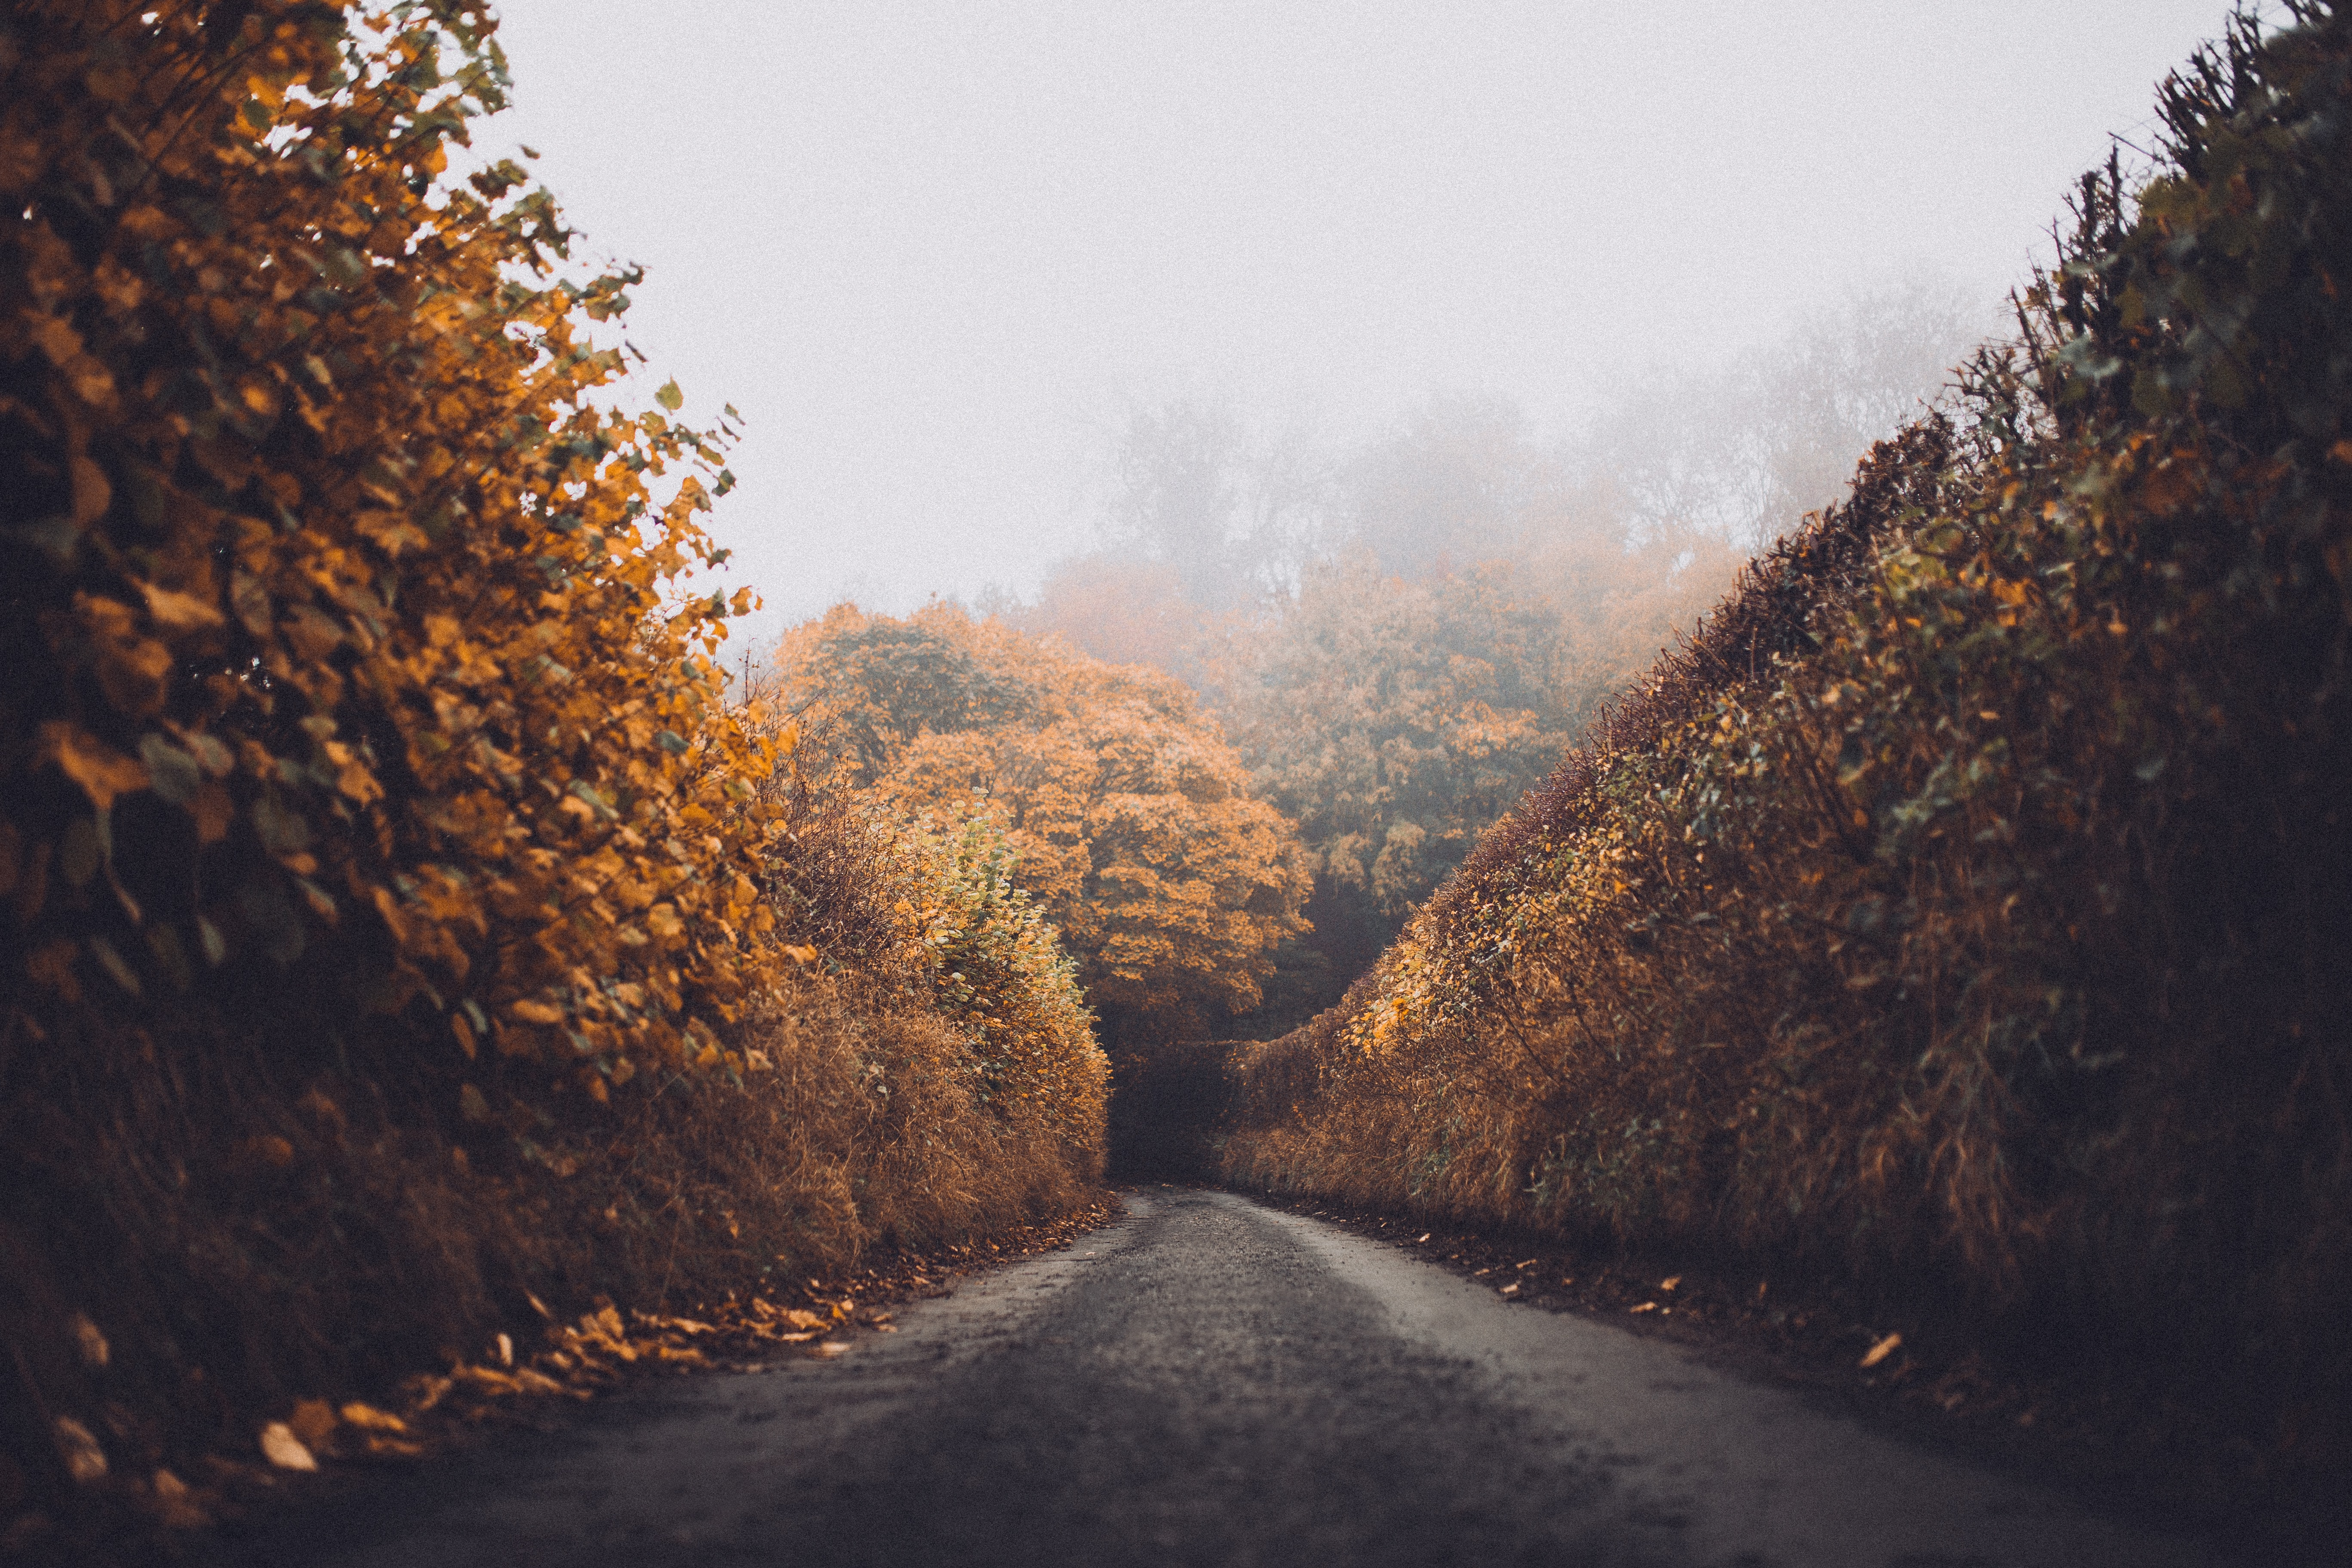 Autumn-colored hedges on the sides of a narrow dirt road